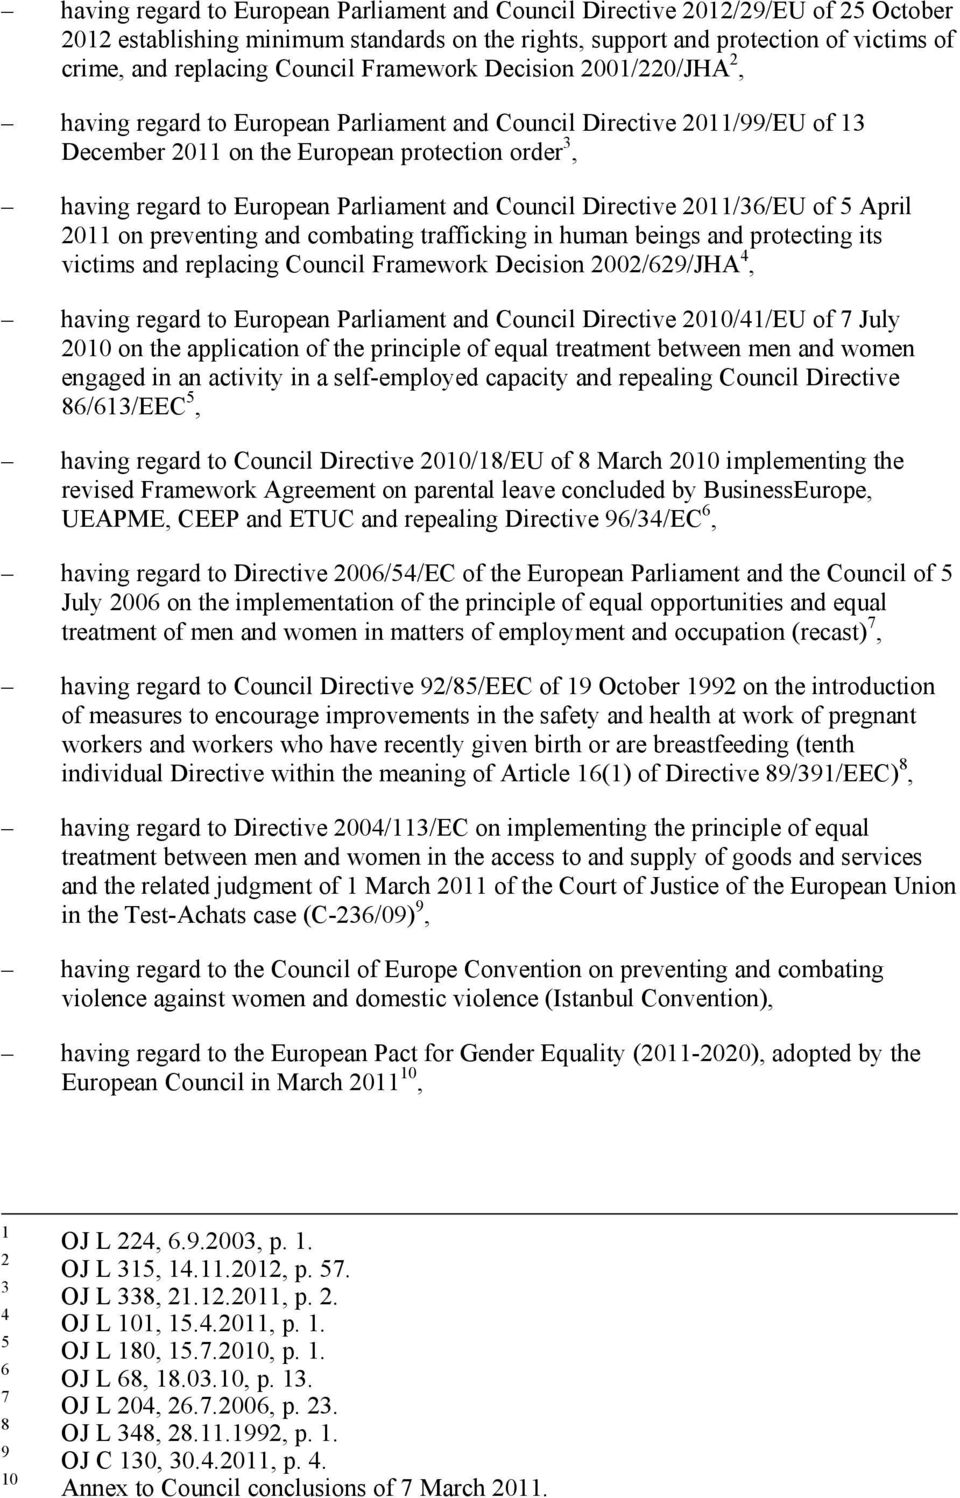 Parliament and Council Directive 2011/36/EU of 5 April 2011 on preventing and combating trafficking in human beings and protecting its victims and replacing Council Framework Decision 2002/629/JHA 4,